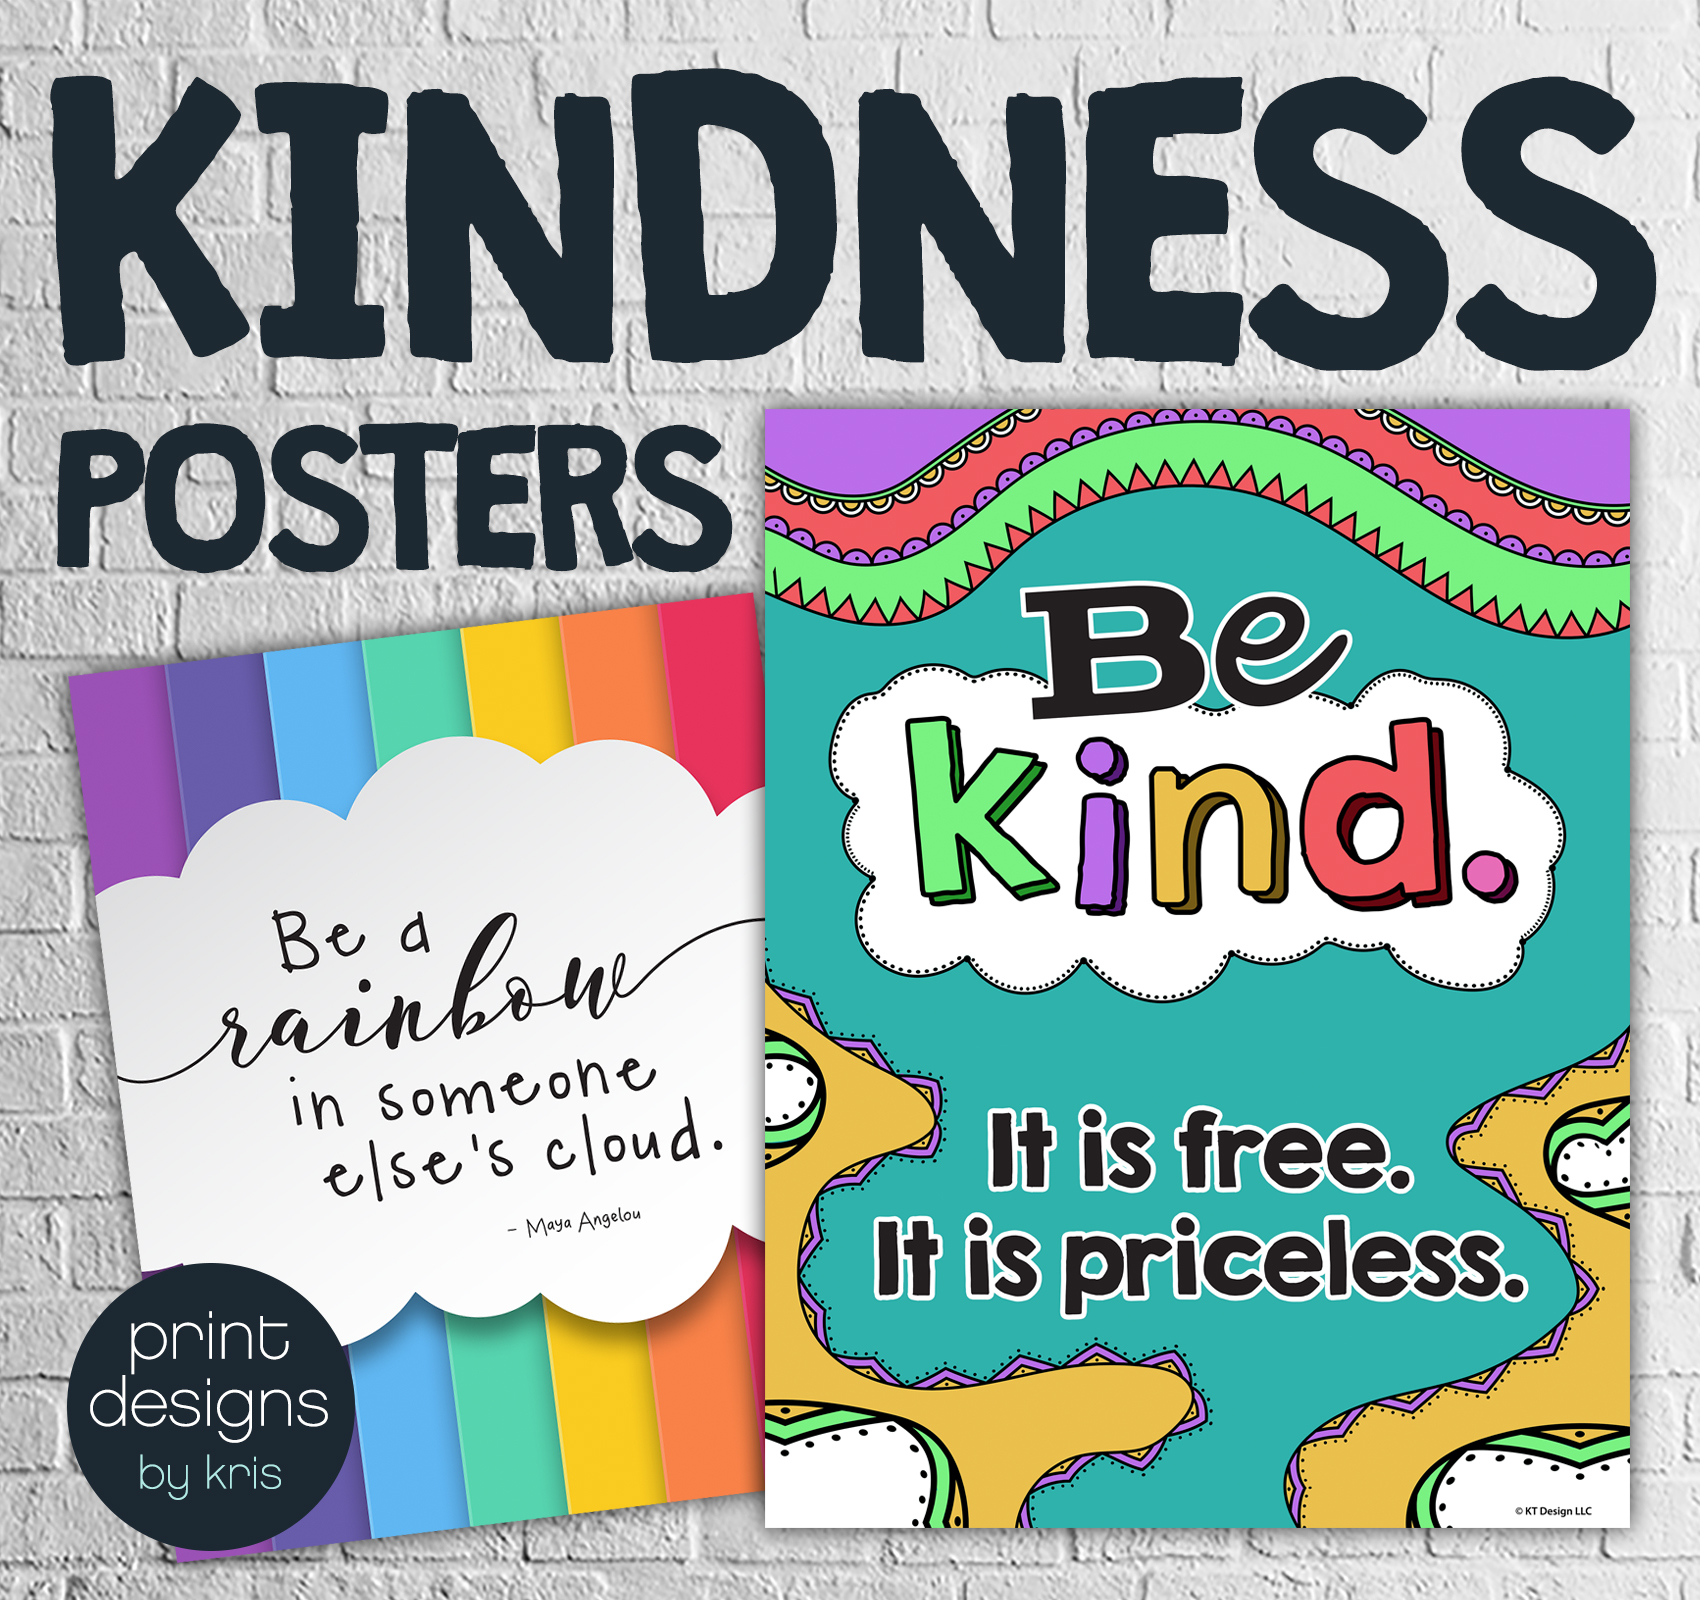 kindness-posters-print-designs-by-kris-m